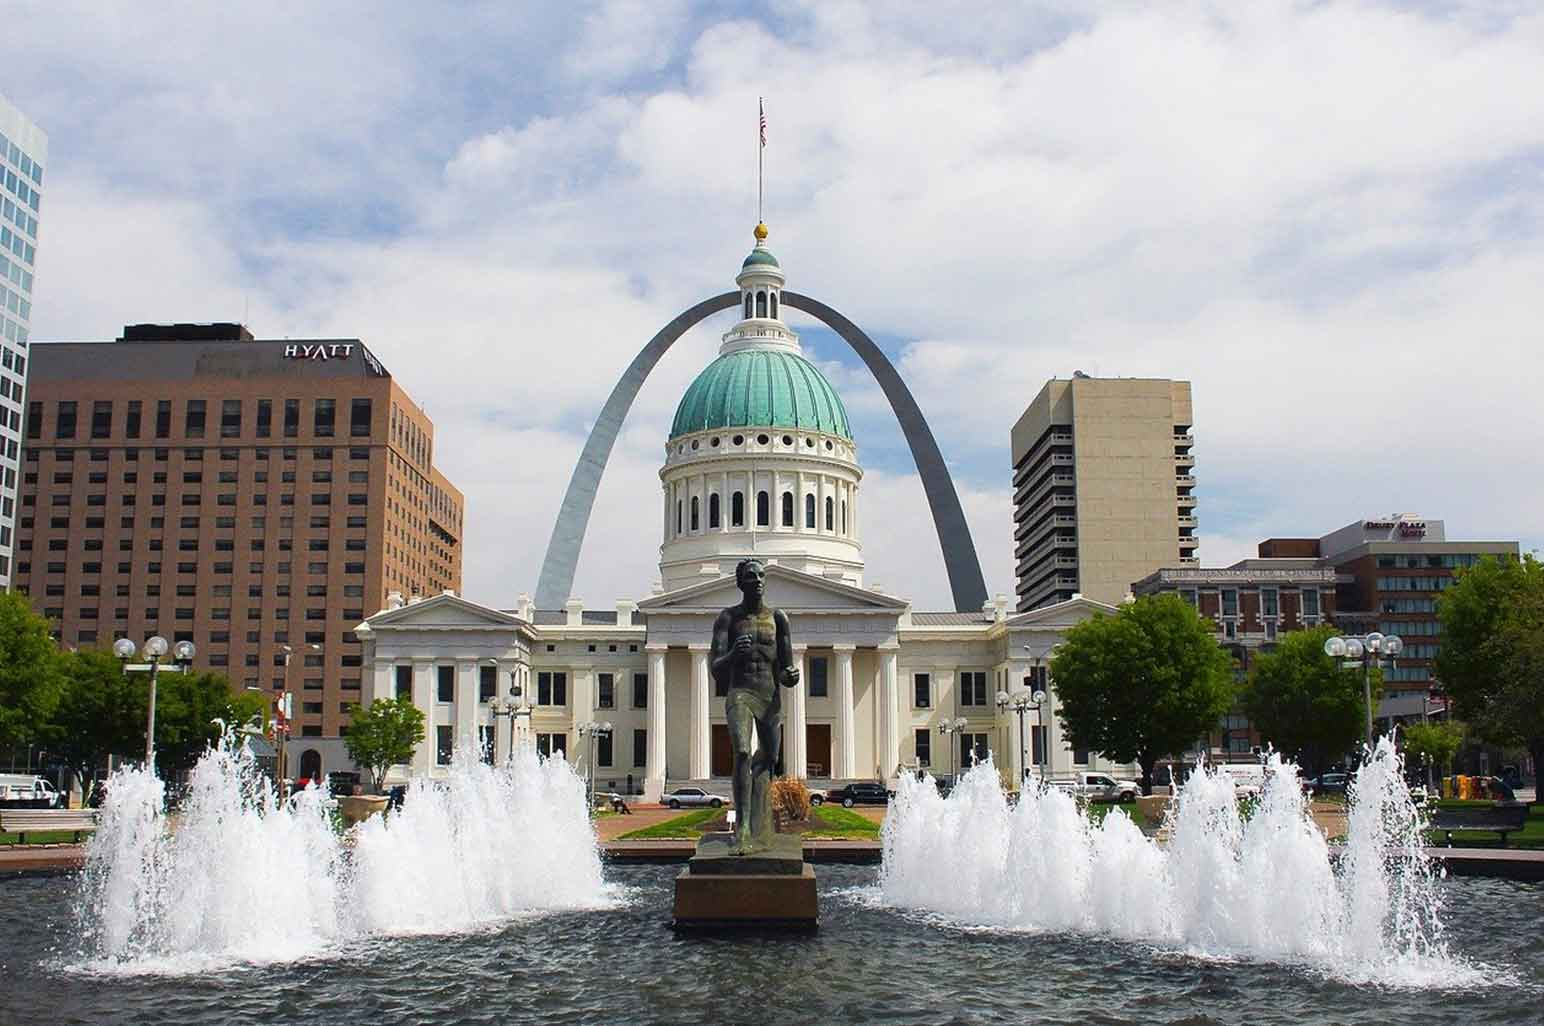 The Nine Most Underrated US Cities to Visit with Family - St. Louis